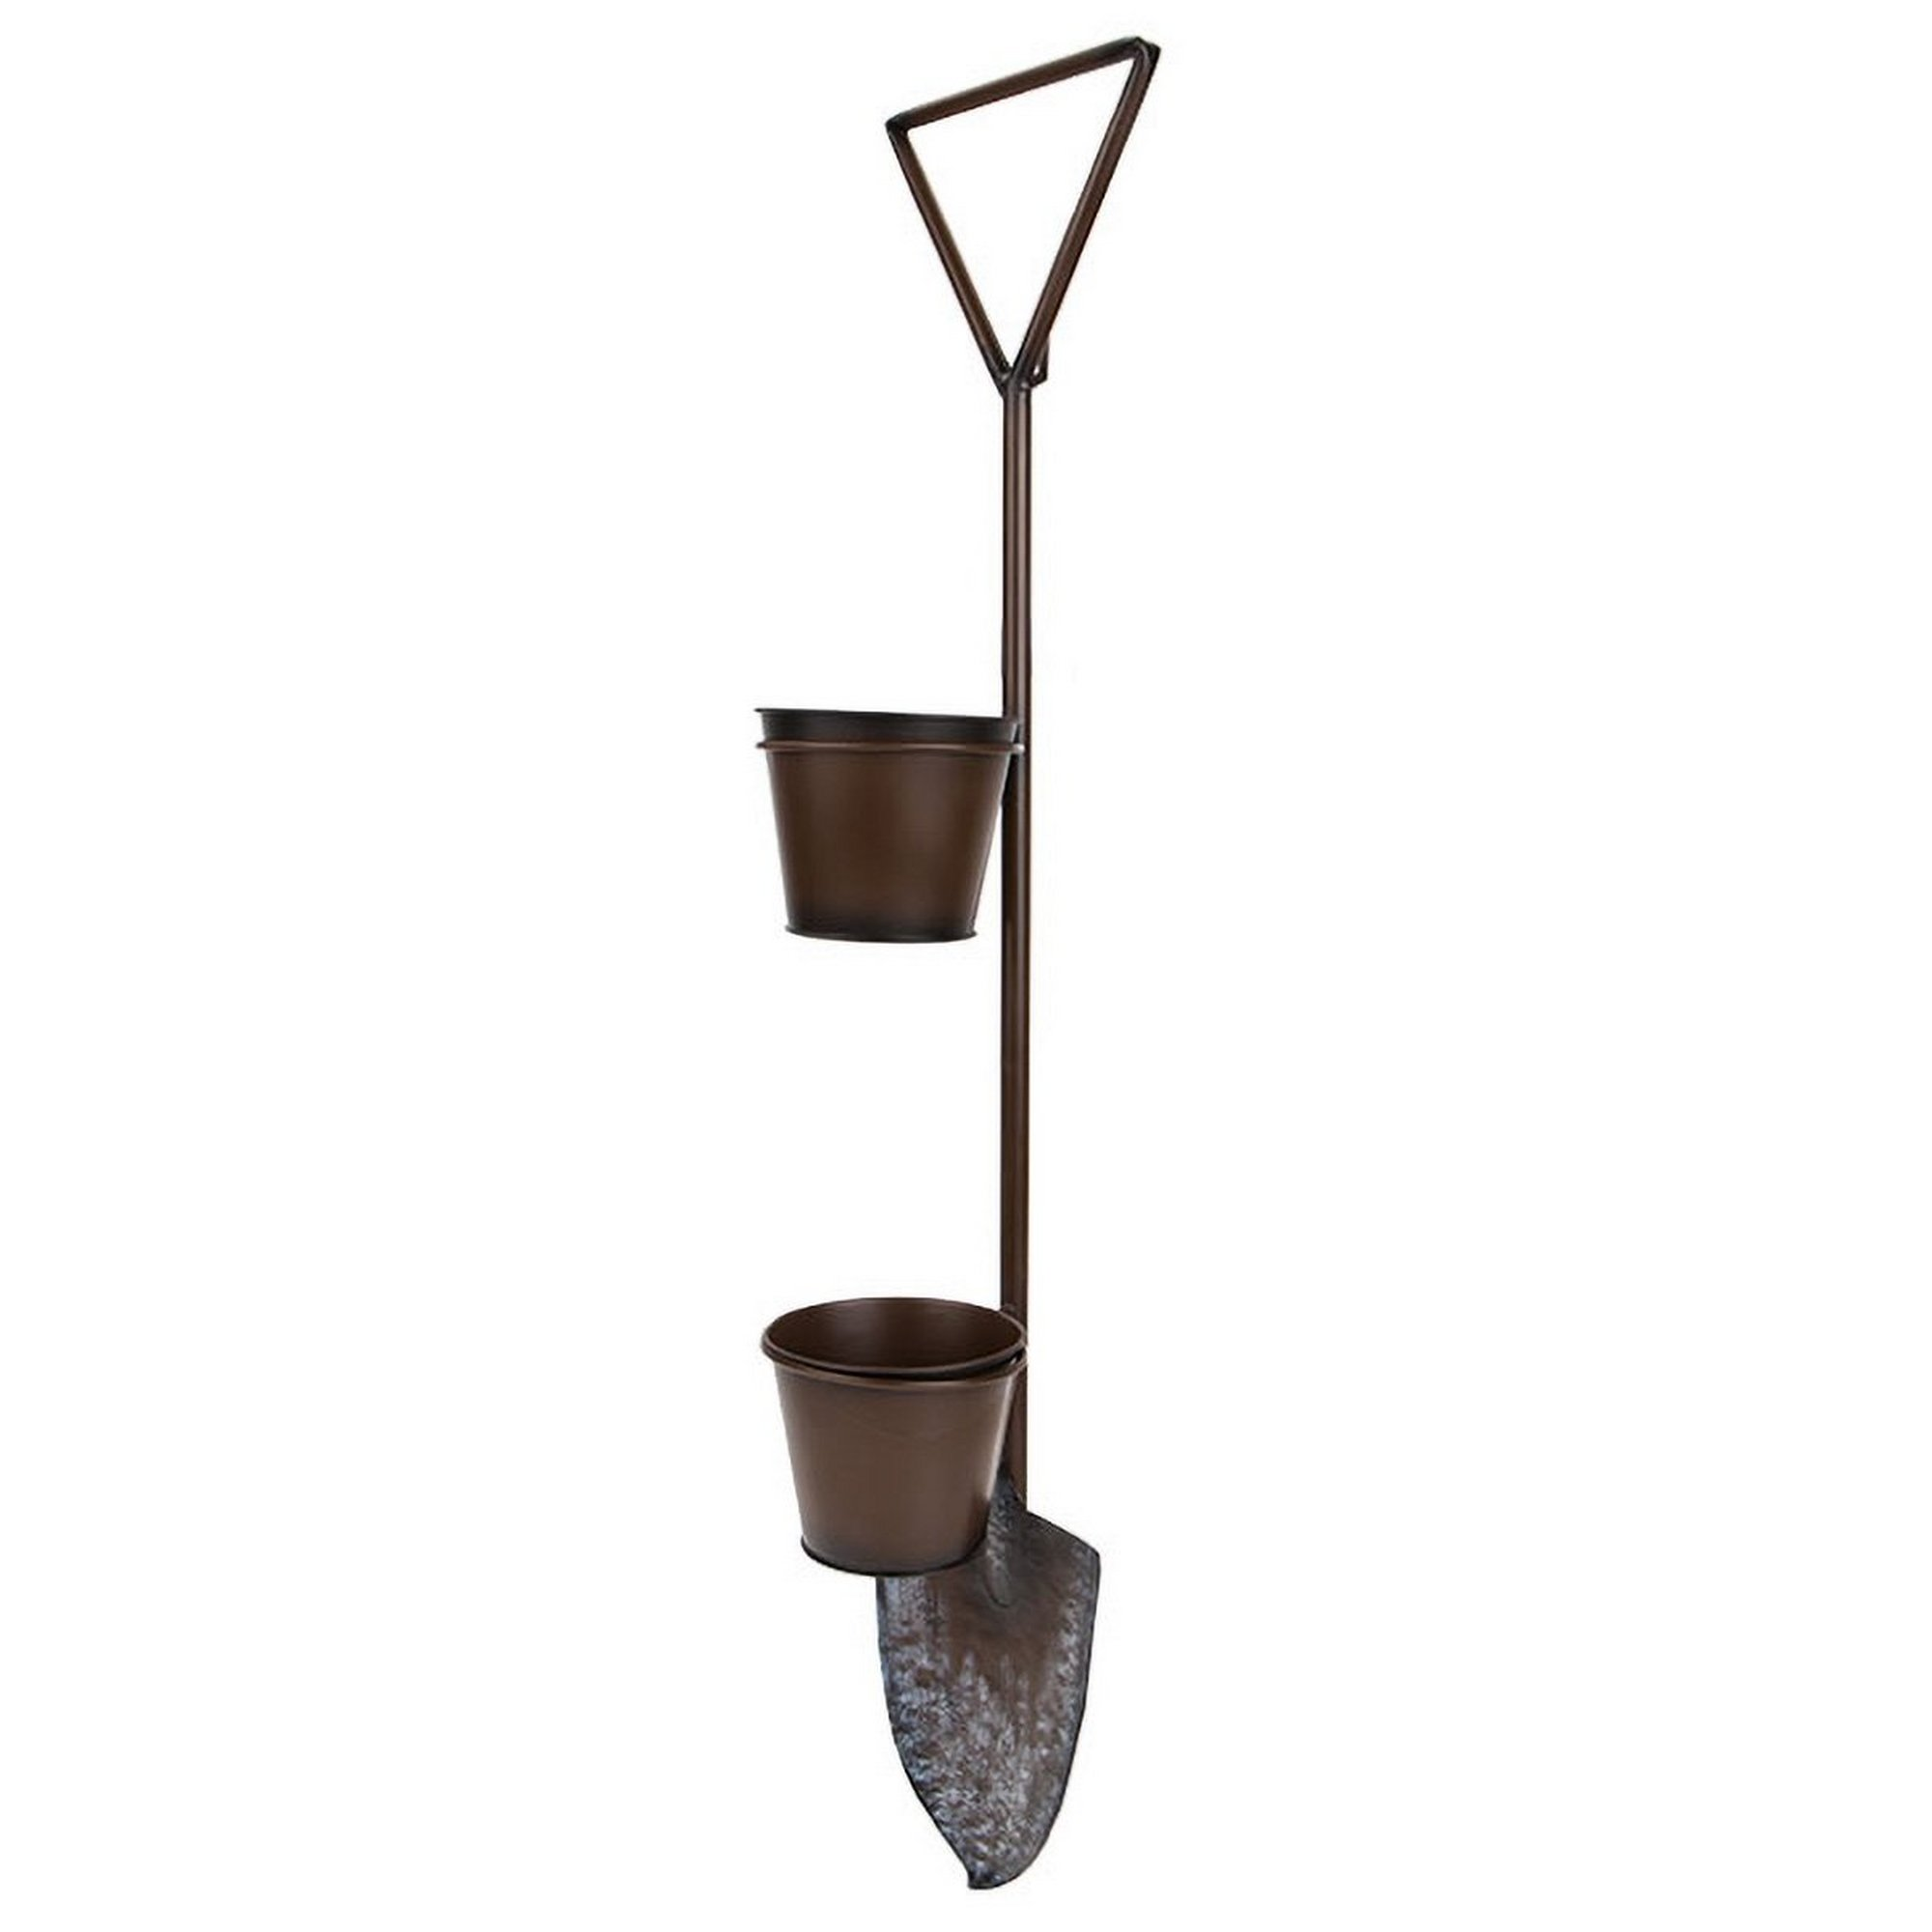 Image of Double Wall Spade Planter